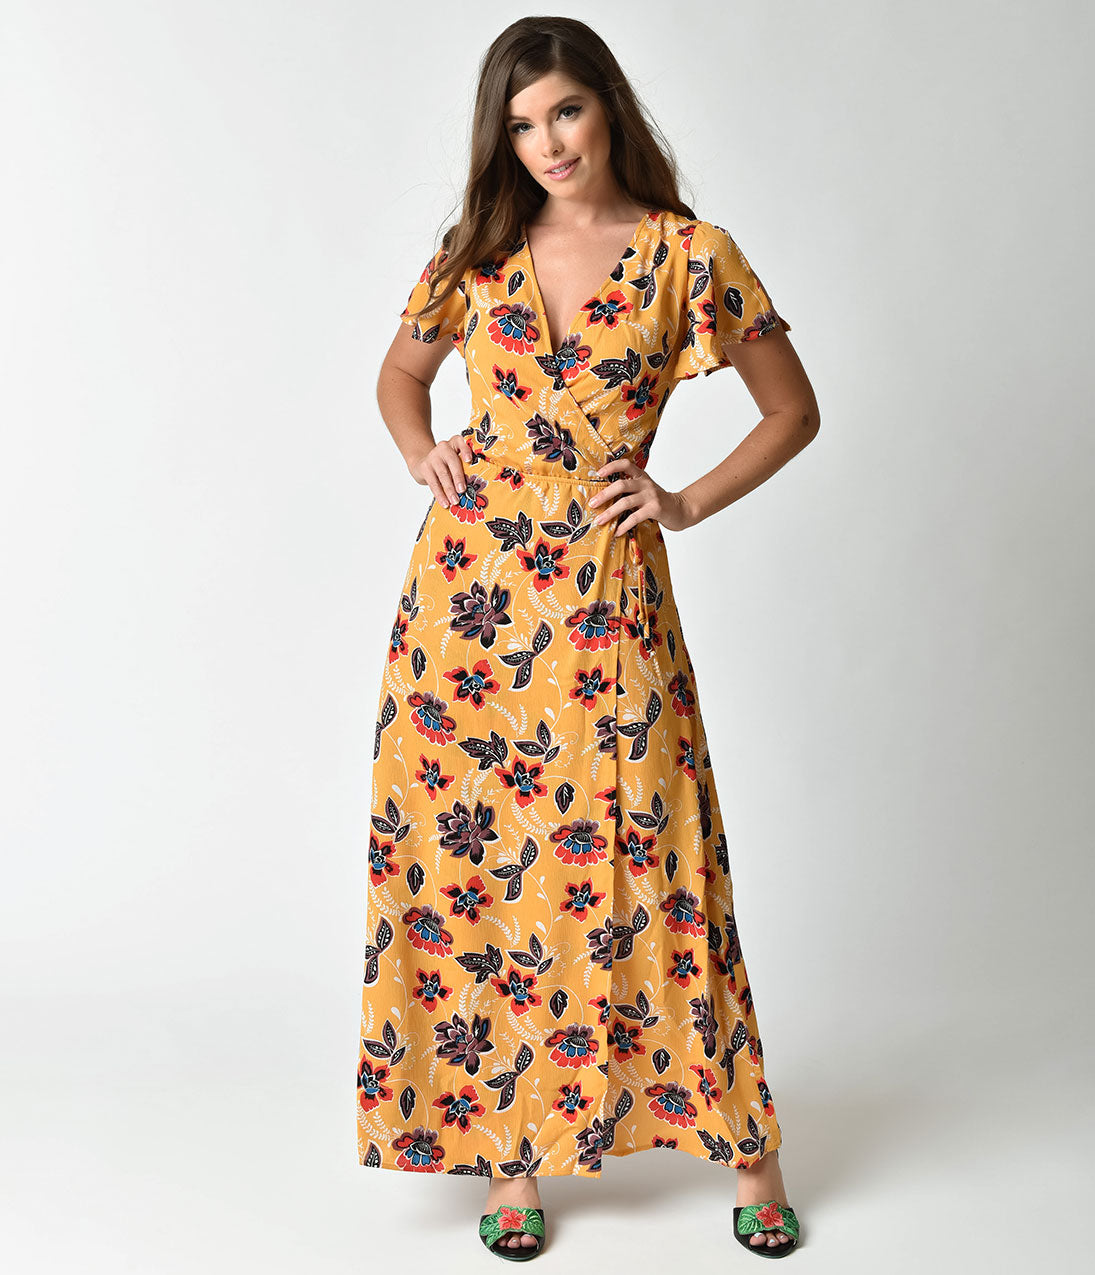 1960s Dresses: New 60s Style Dresses – Jackie O to Mod 1970s Style Mustard Yellow  Floral Short Sleeve Maxi Dress $42.00 AT vintagedancer.com